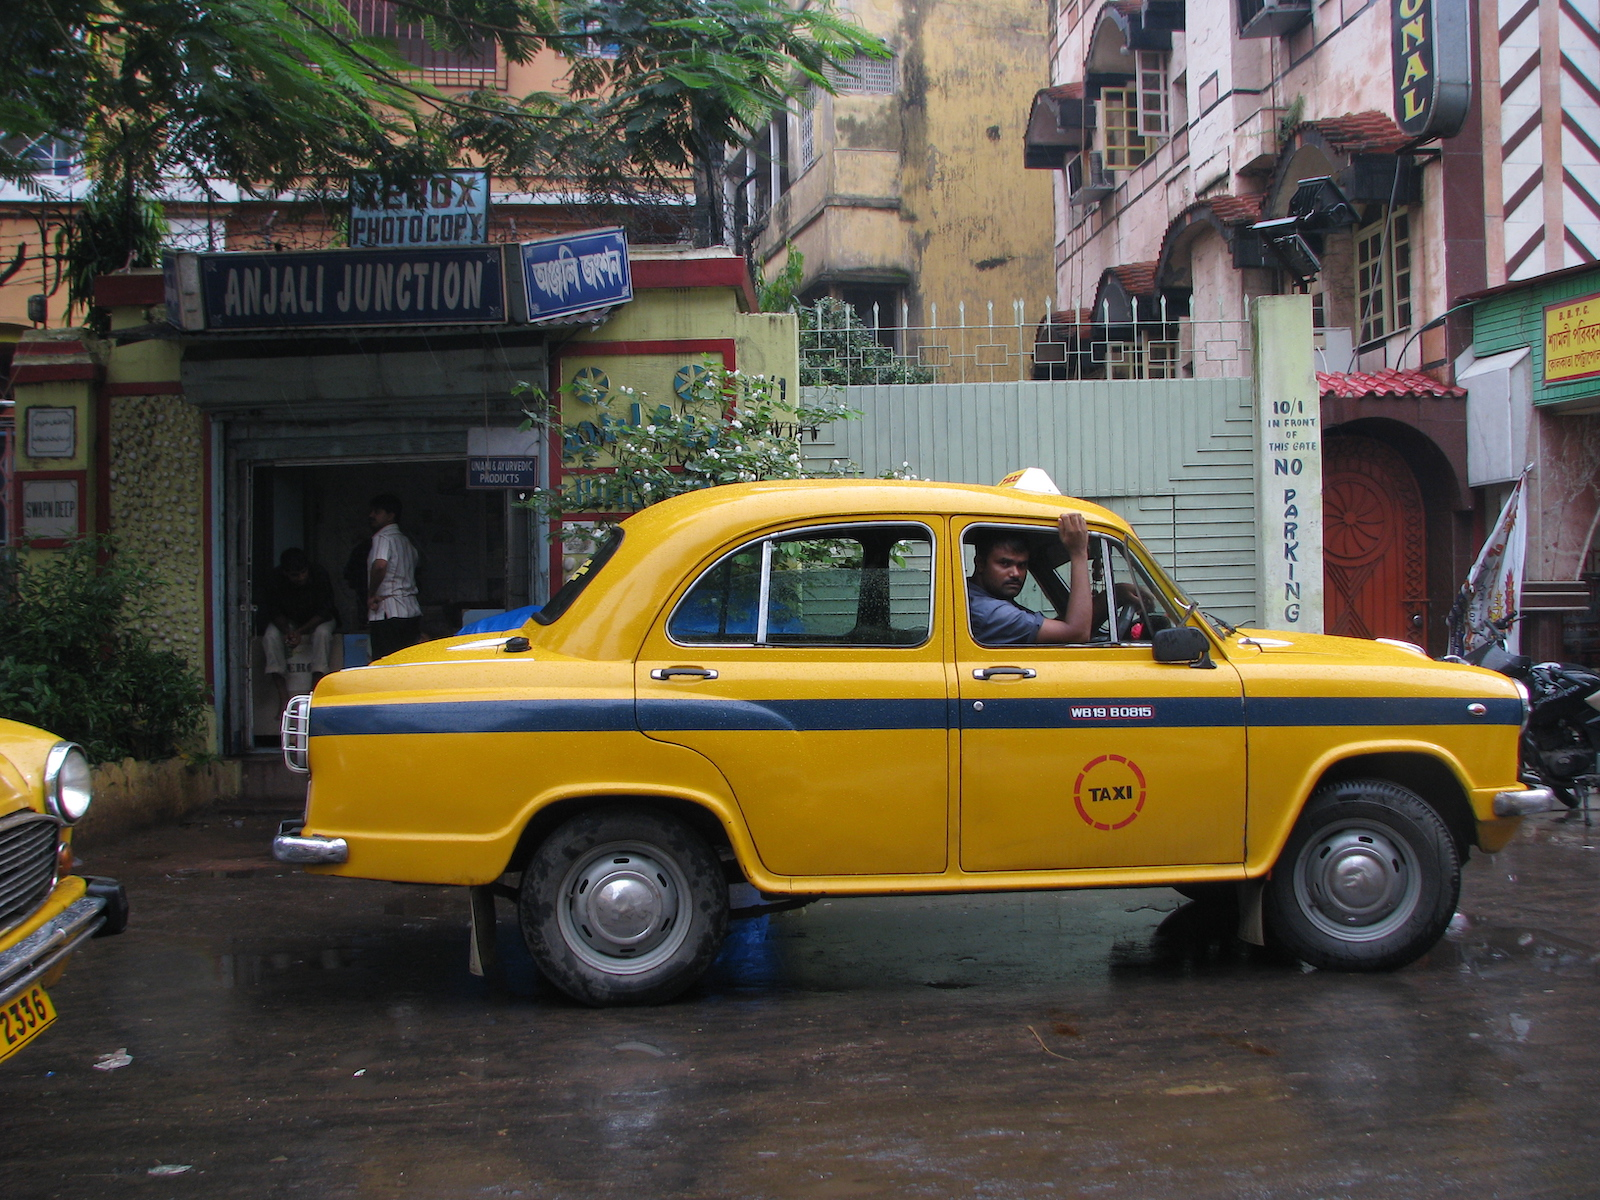 The ubiquitous taxis of Kolkata, Indian